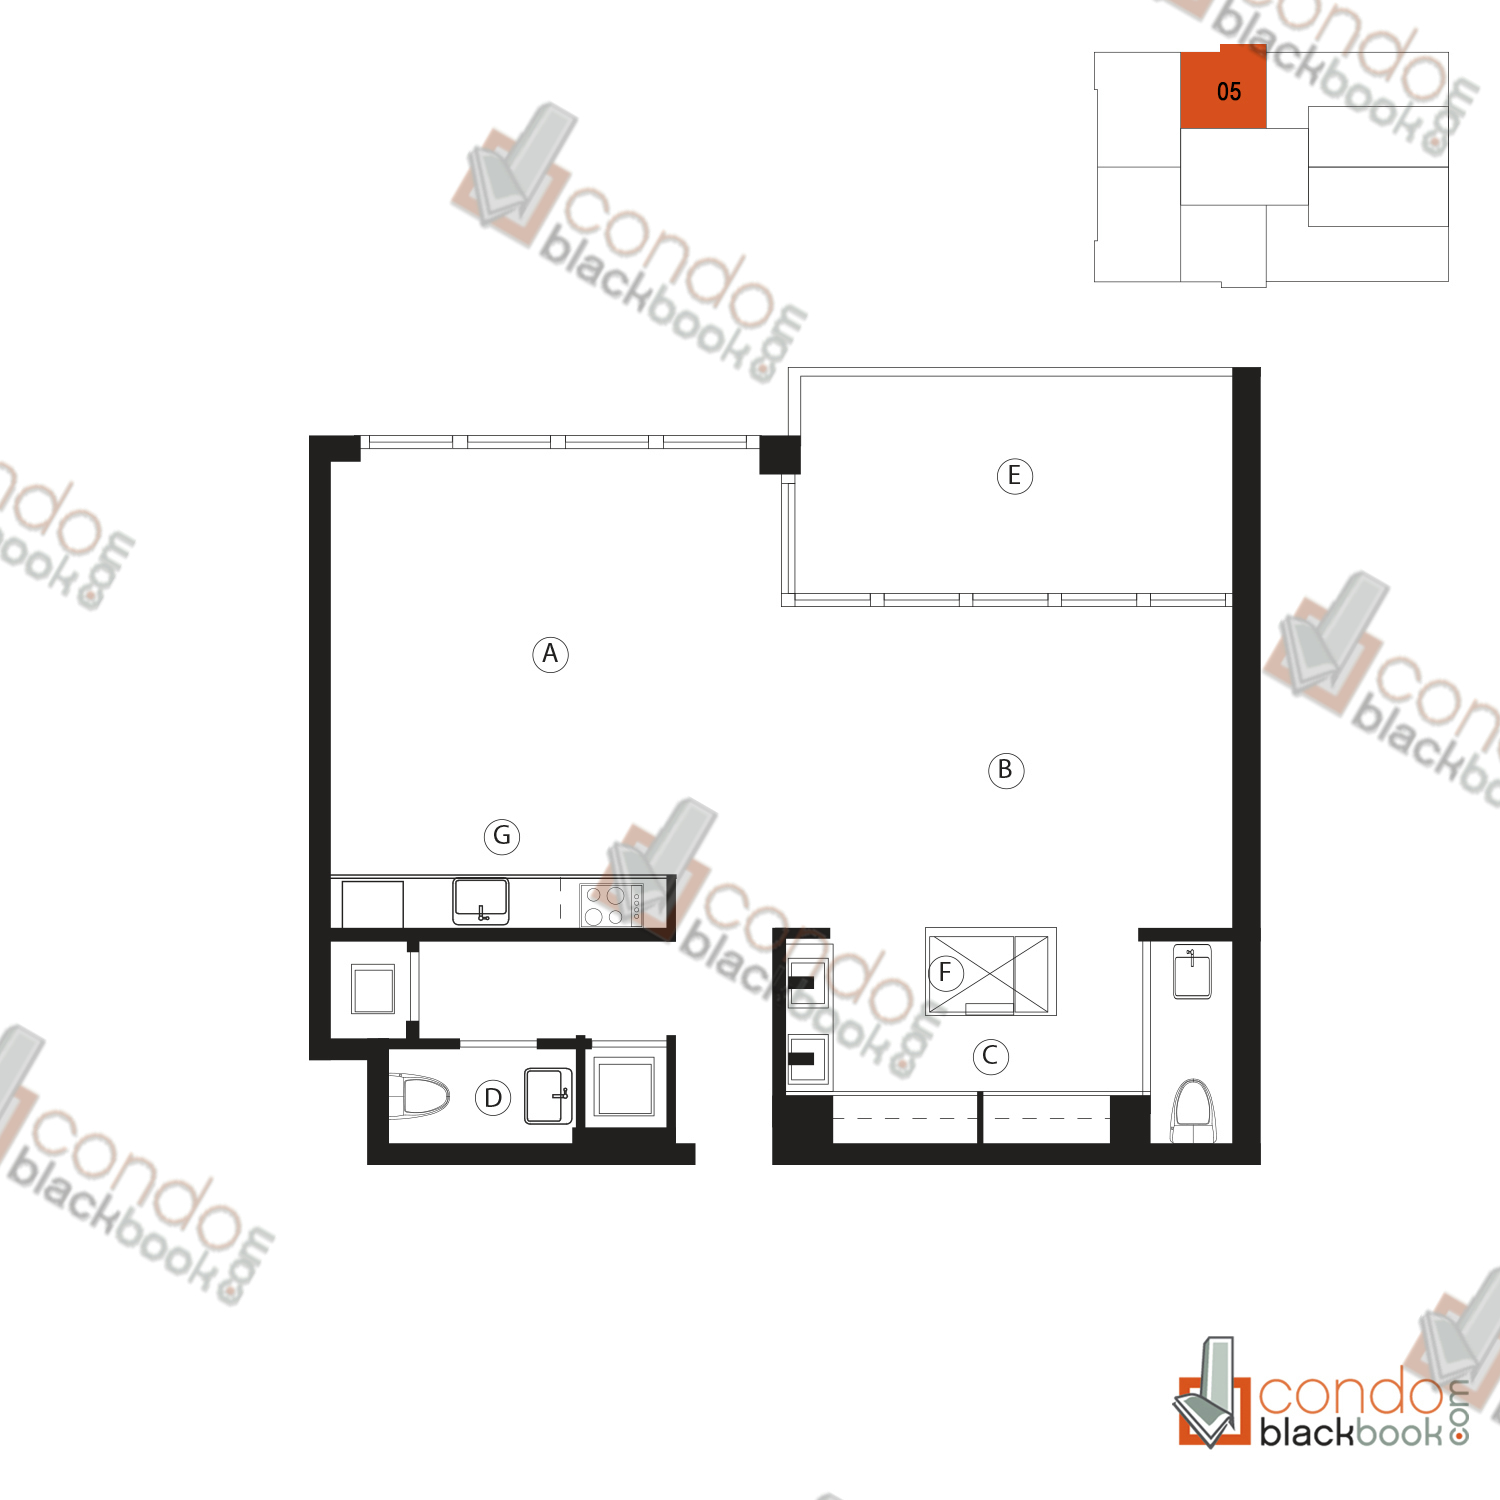 Floor plan for Ten Museum Park Downtown Miami Miami, model 05, line 05, 1/1.5 bedrooms, 791 sq ft